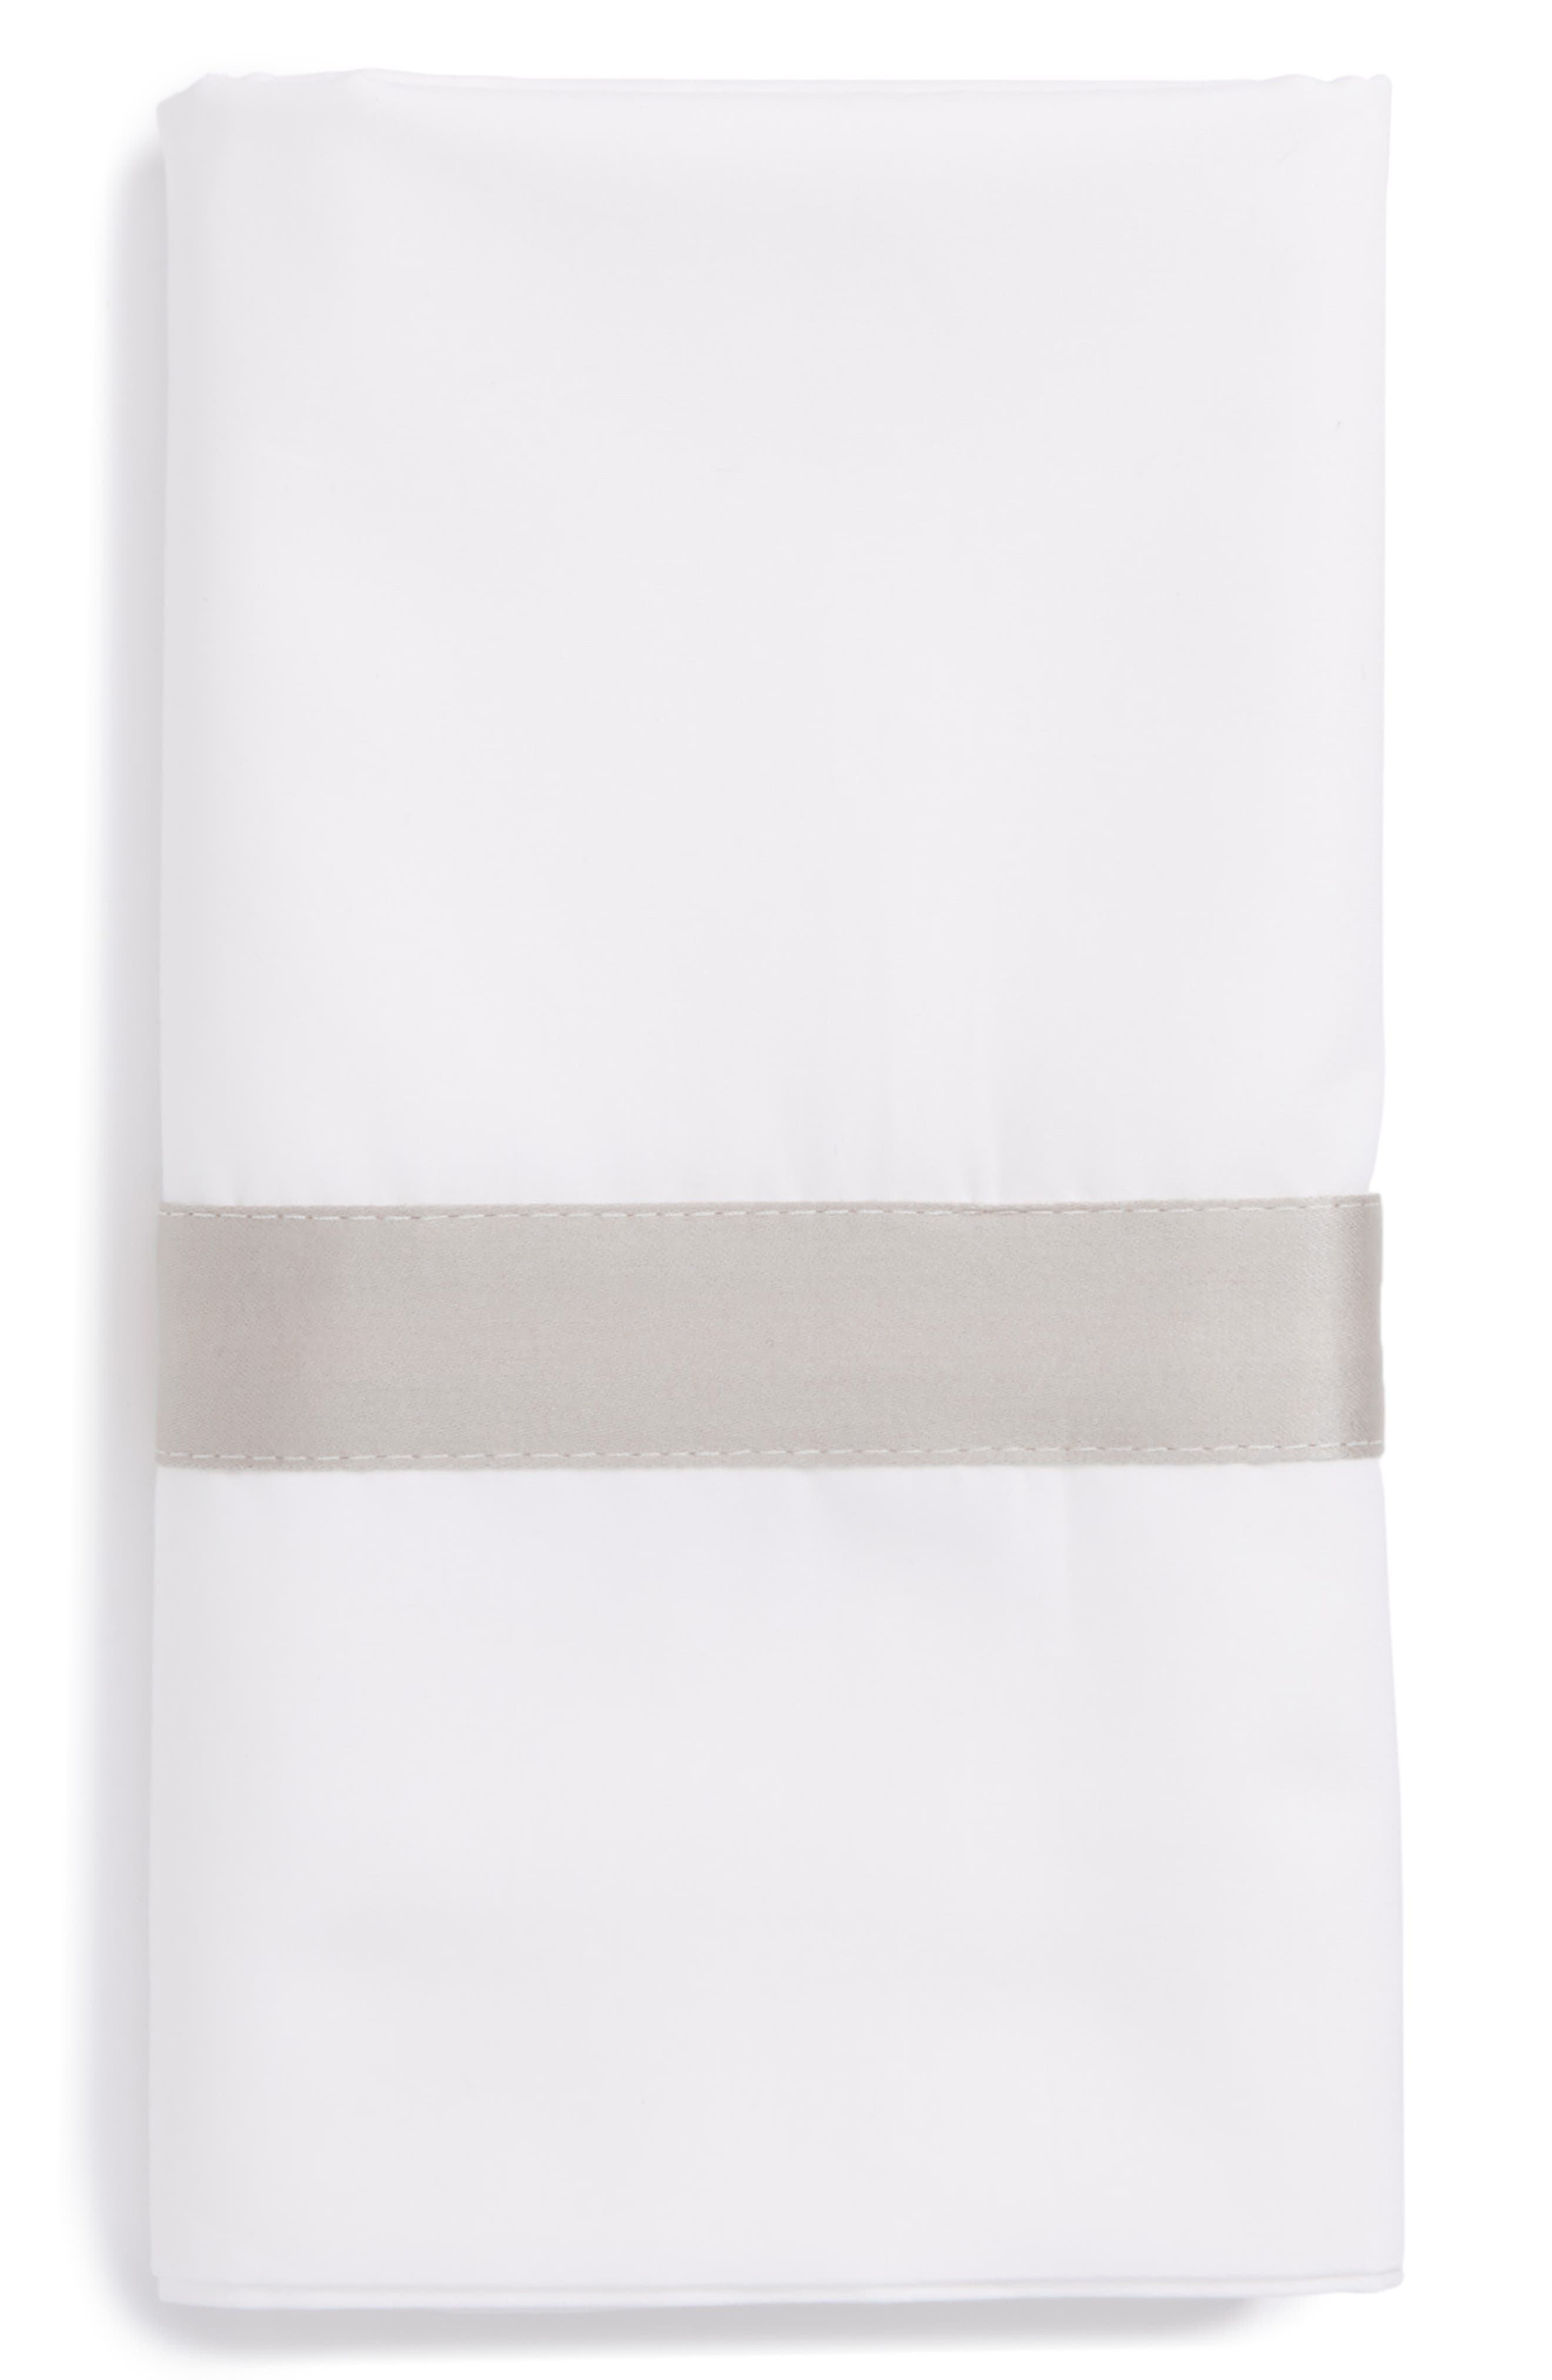 Lowell 600 Thread Count Pillowcase,                             Main thumbnail 1, color,                             SILVER